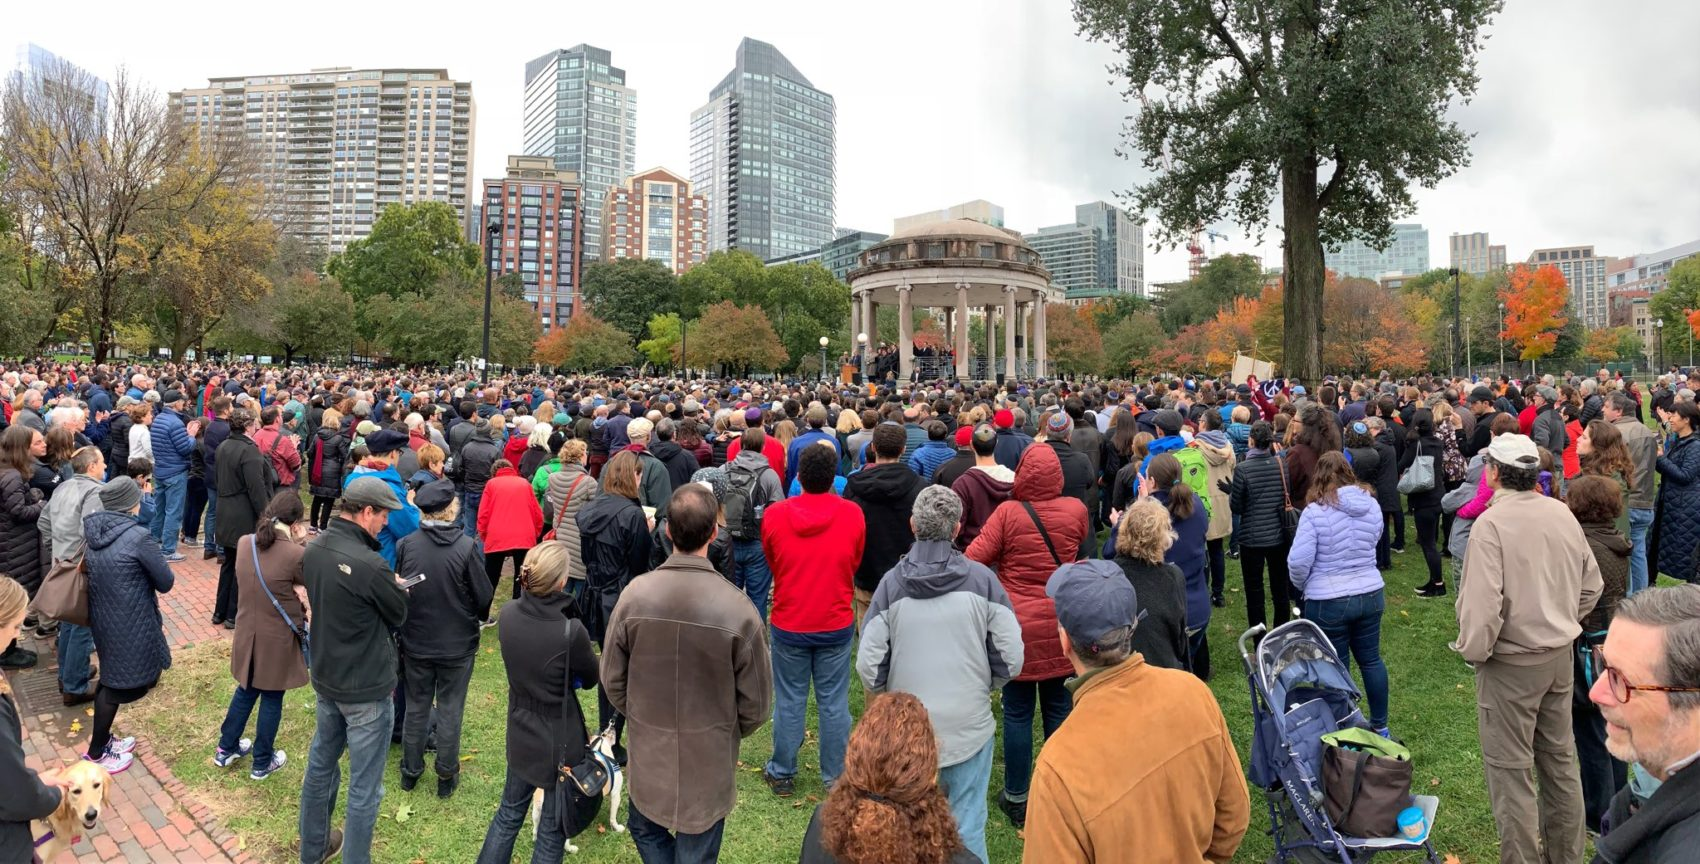 People gather in Boston Common on October 28, 2018 to condemn anti-Semitism and mourn the victims of the deadly shooting Saturday at a Pittsburgh synagogue. (Simón Ríos/WBUR)